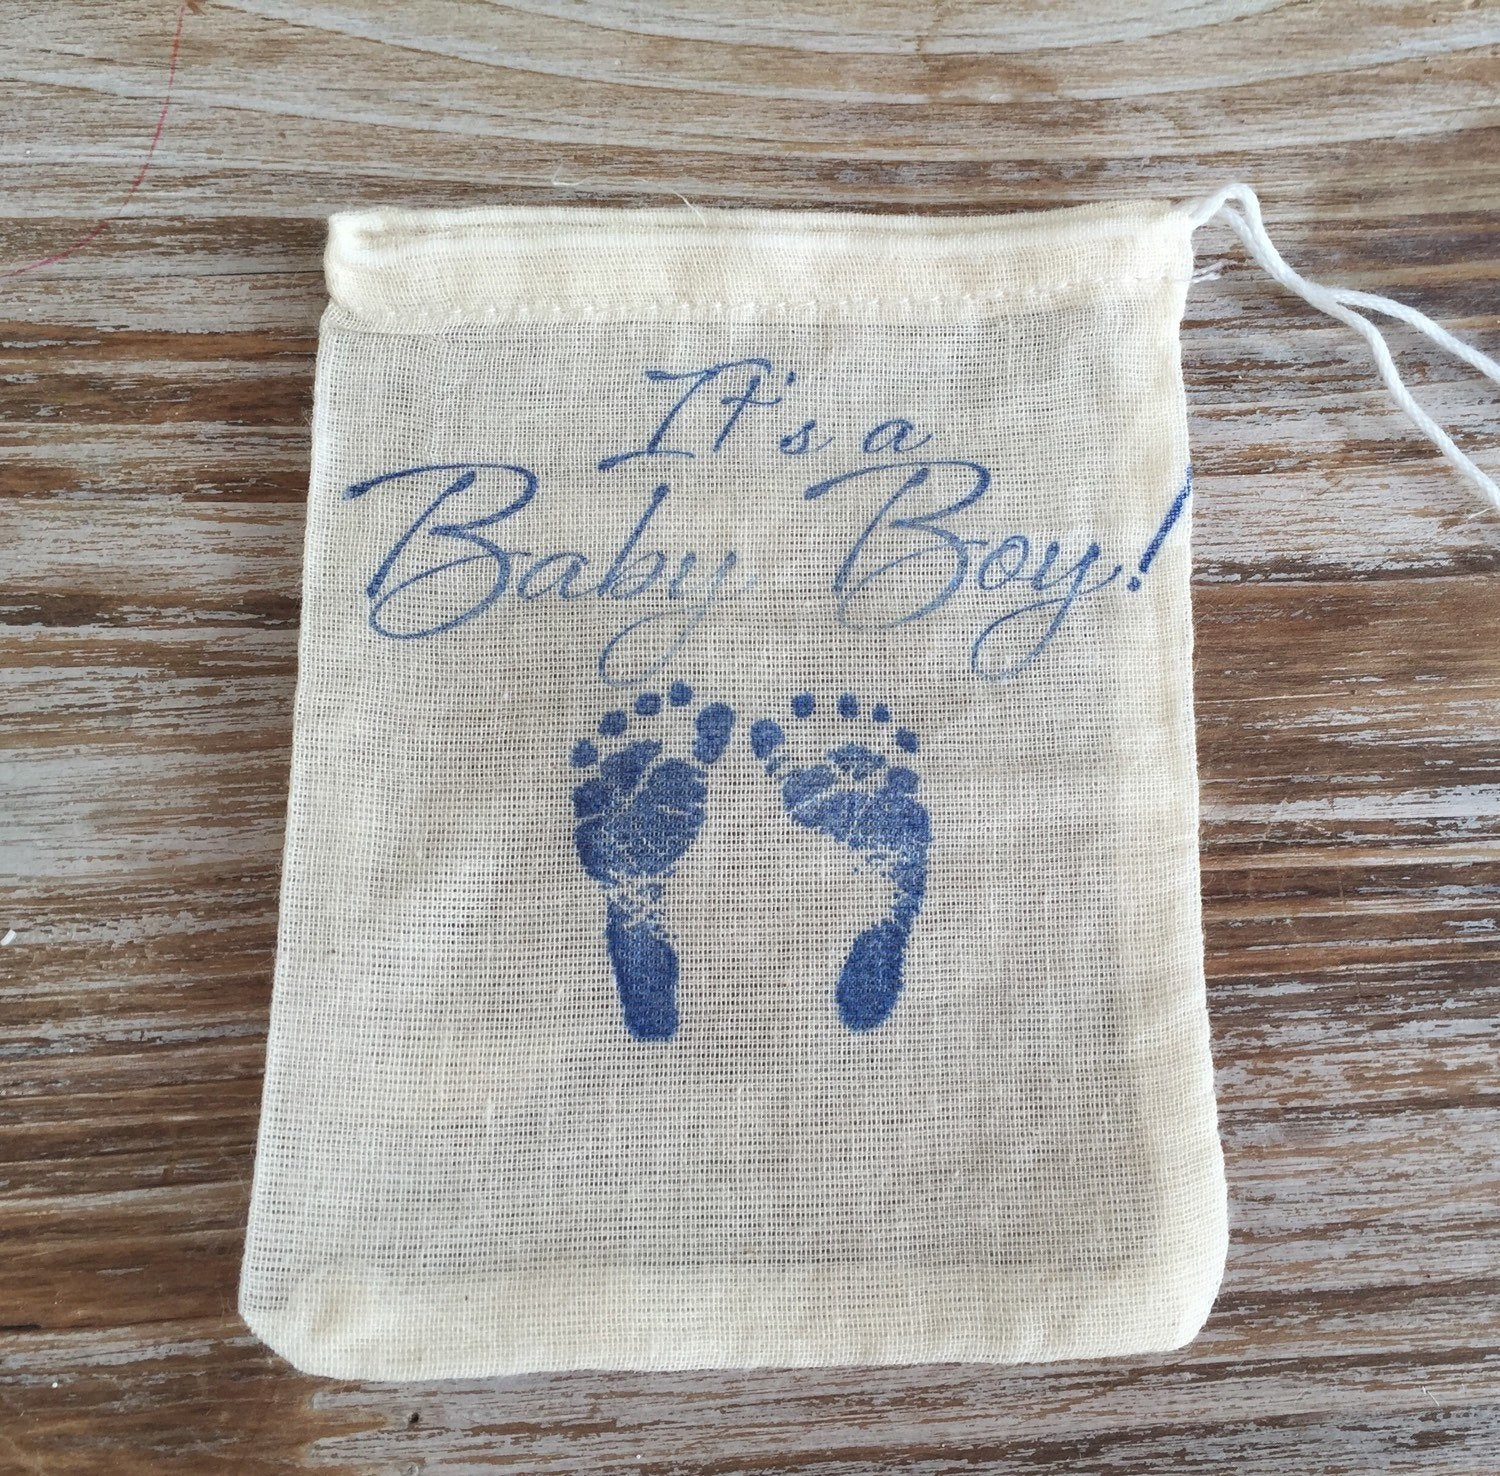 10 Baby shower favor bags, baby boy favor bags, baby girl favor bags, its a boy, its a girl,  baby shower bags